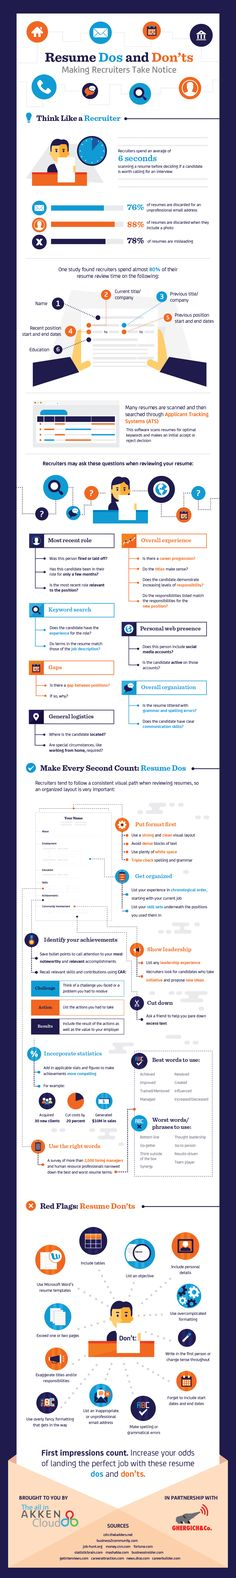 infographic : Resume Dos & Donts: making Recruiters take Notice Infographic Resume Help, Job Resume, Resume Tips, Resume Ideas, Resume Review, Resume Examples, Job Career, Career Advice, Resume Writing